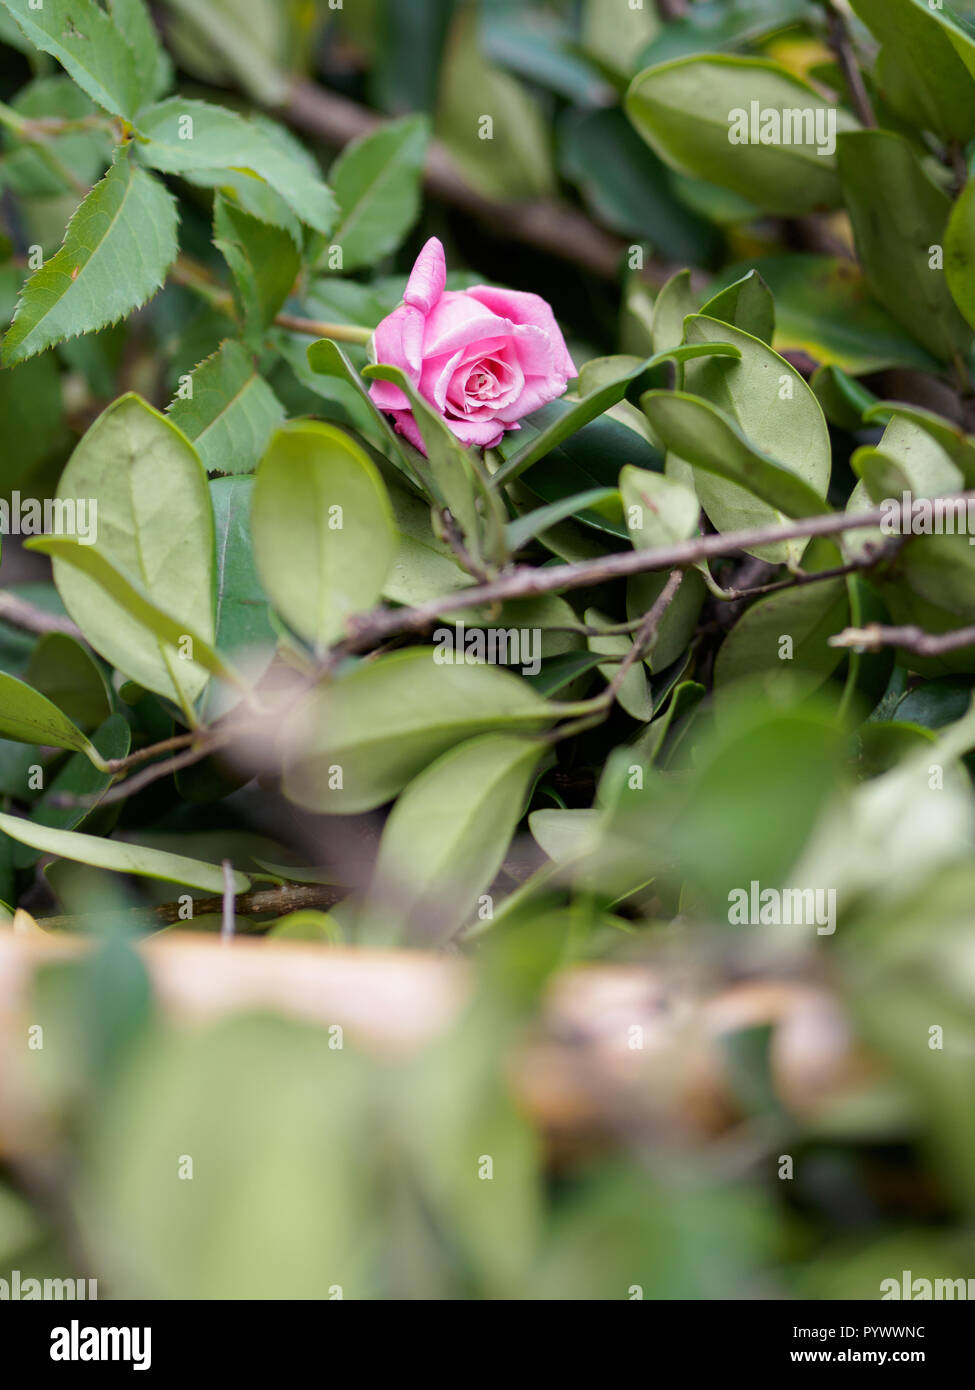 Pink rose among yard clippings - Stock Image